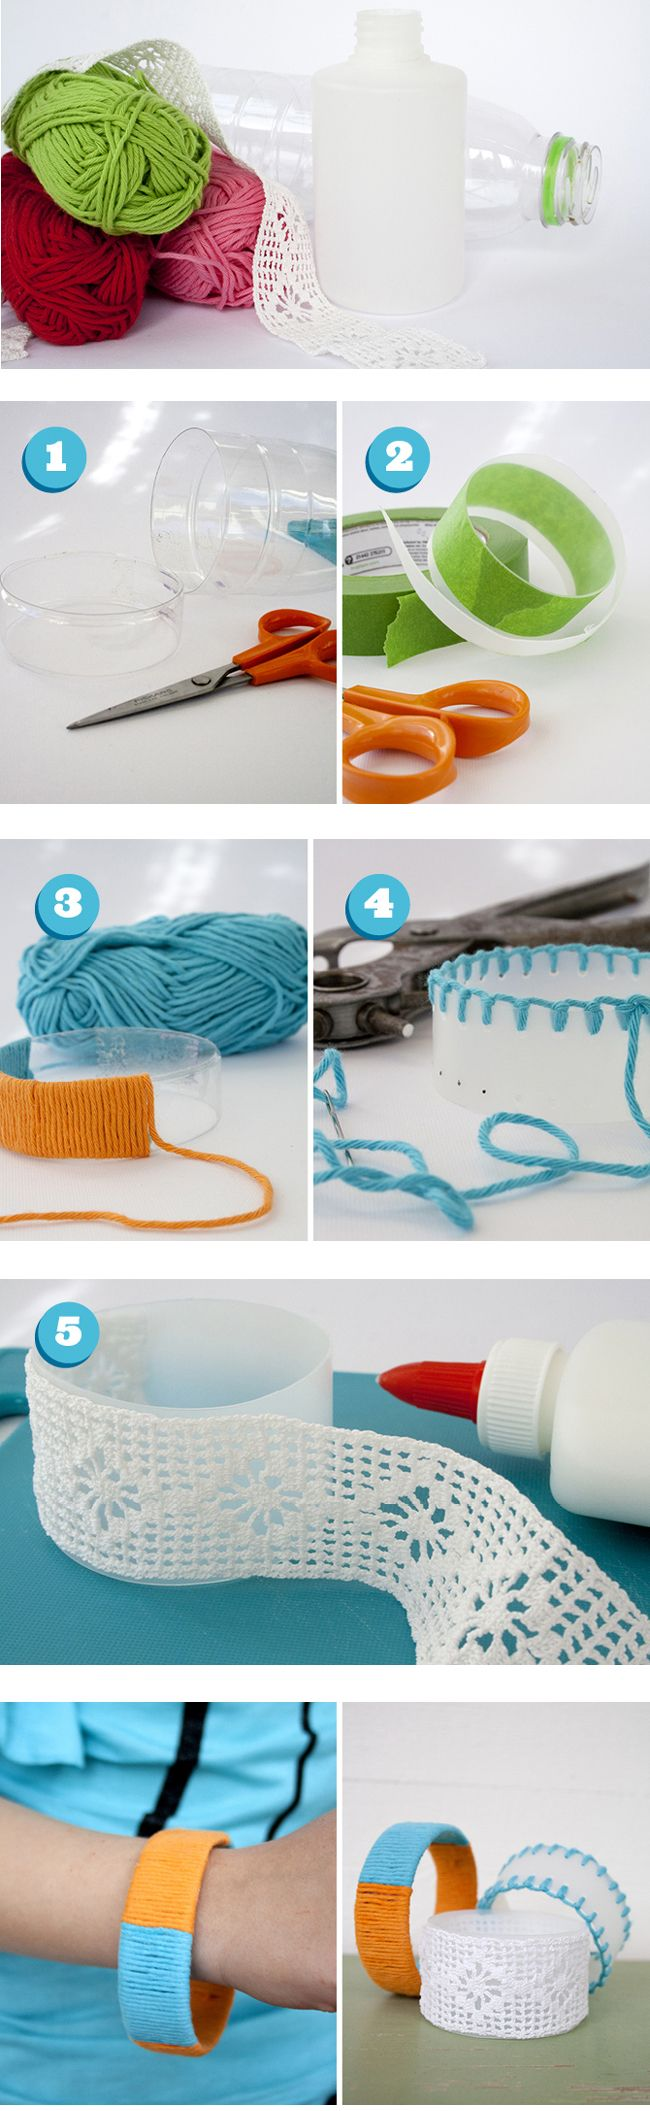 The 25 best waste material craft ideas on pinterest for Activity using waste materials